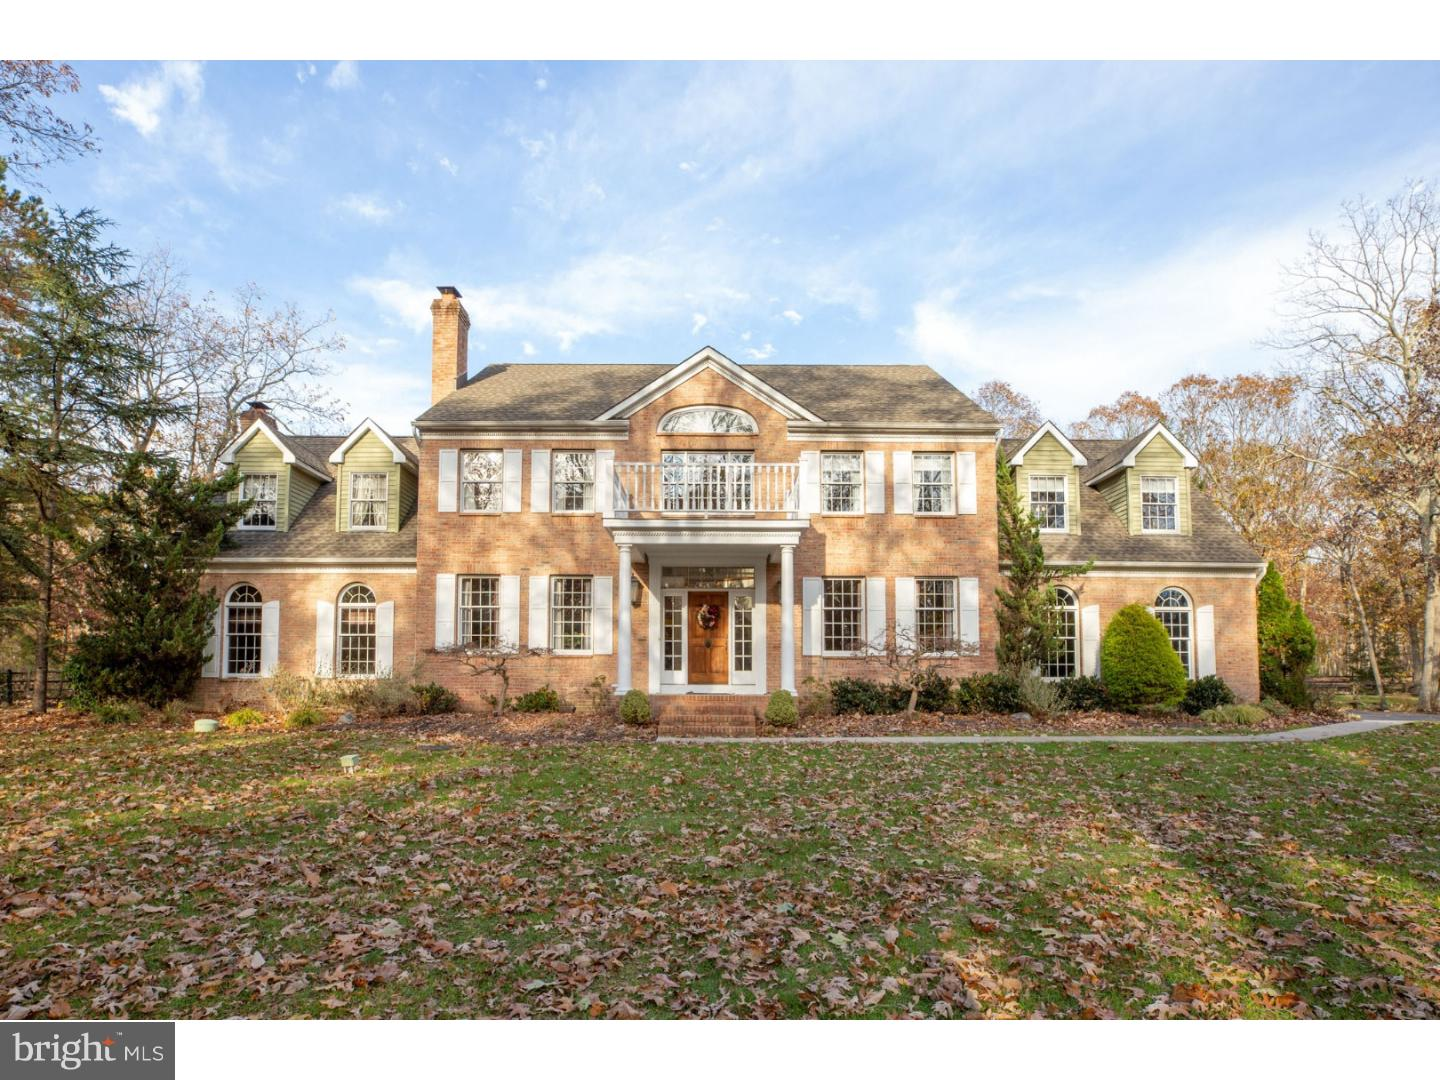 Single Family Home for Sale at 2 HUNTERS Lane Tabernacle, New Jersey 08088 United States